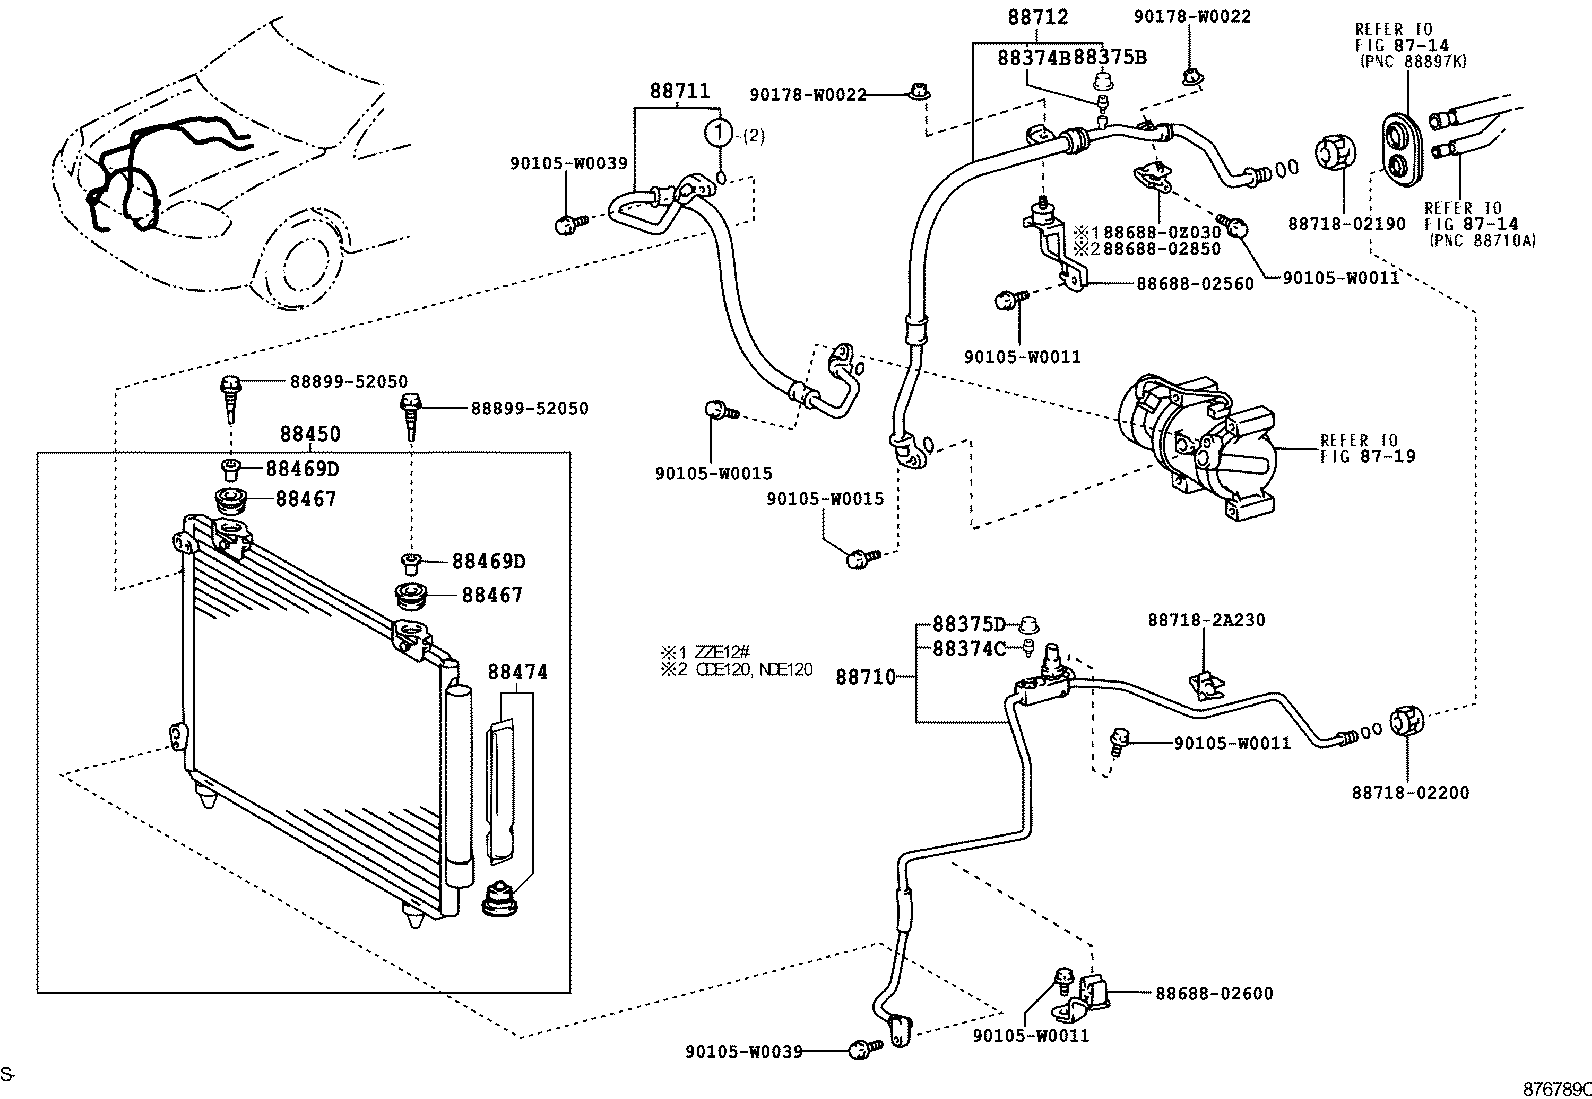 8718_heating Air Conditioning Cooler Piping on Toyota Rav4 Parts Diagram